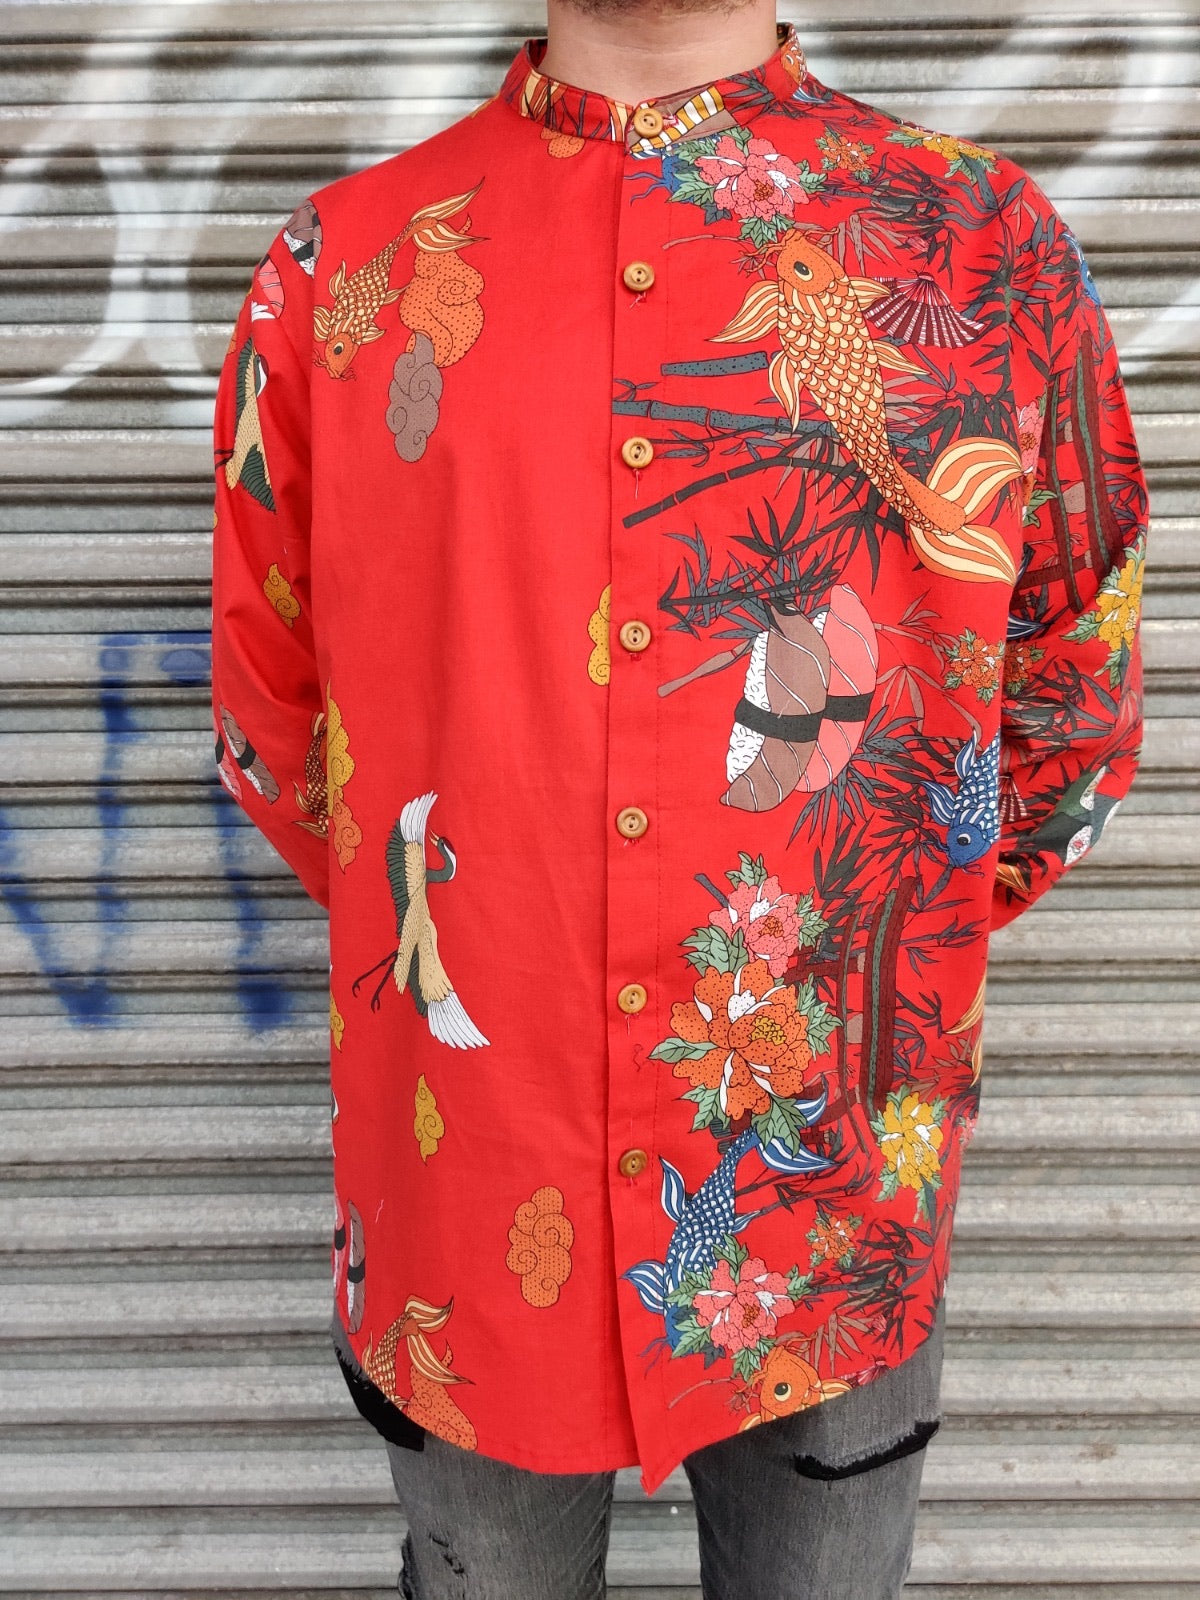 One-of-a-kind Gold Koi Rounded Collar Shirt